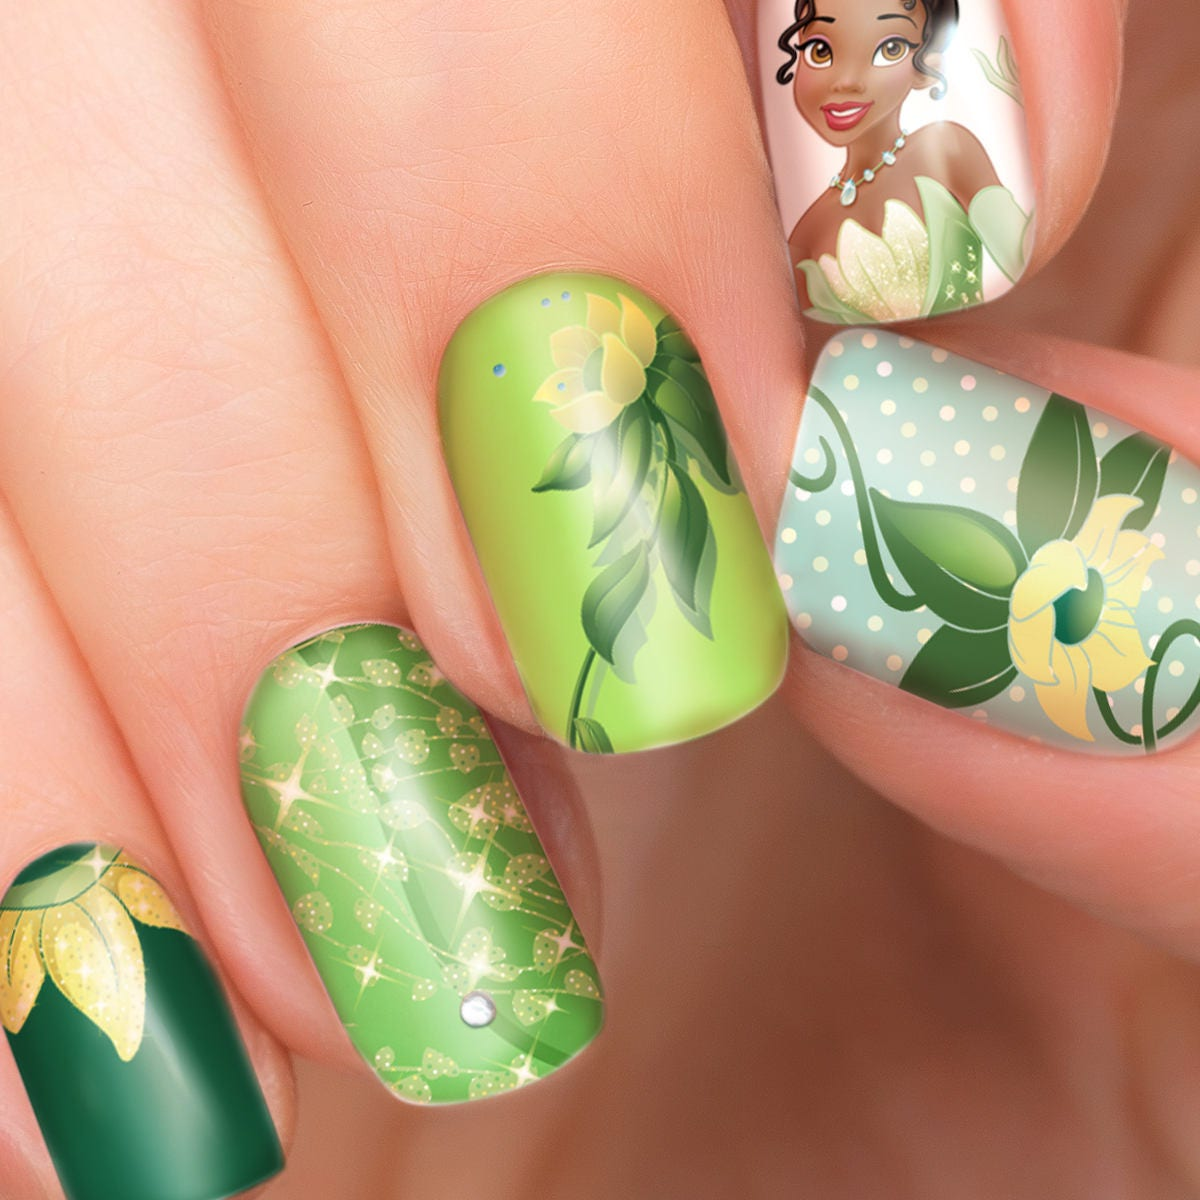 Disney Princess Tiana Waterfall Nail Art: Tiana Disney Nail Transfers Illustrated Nail Art Decals